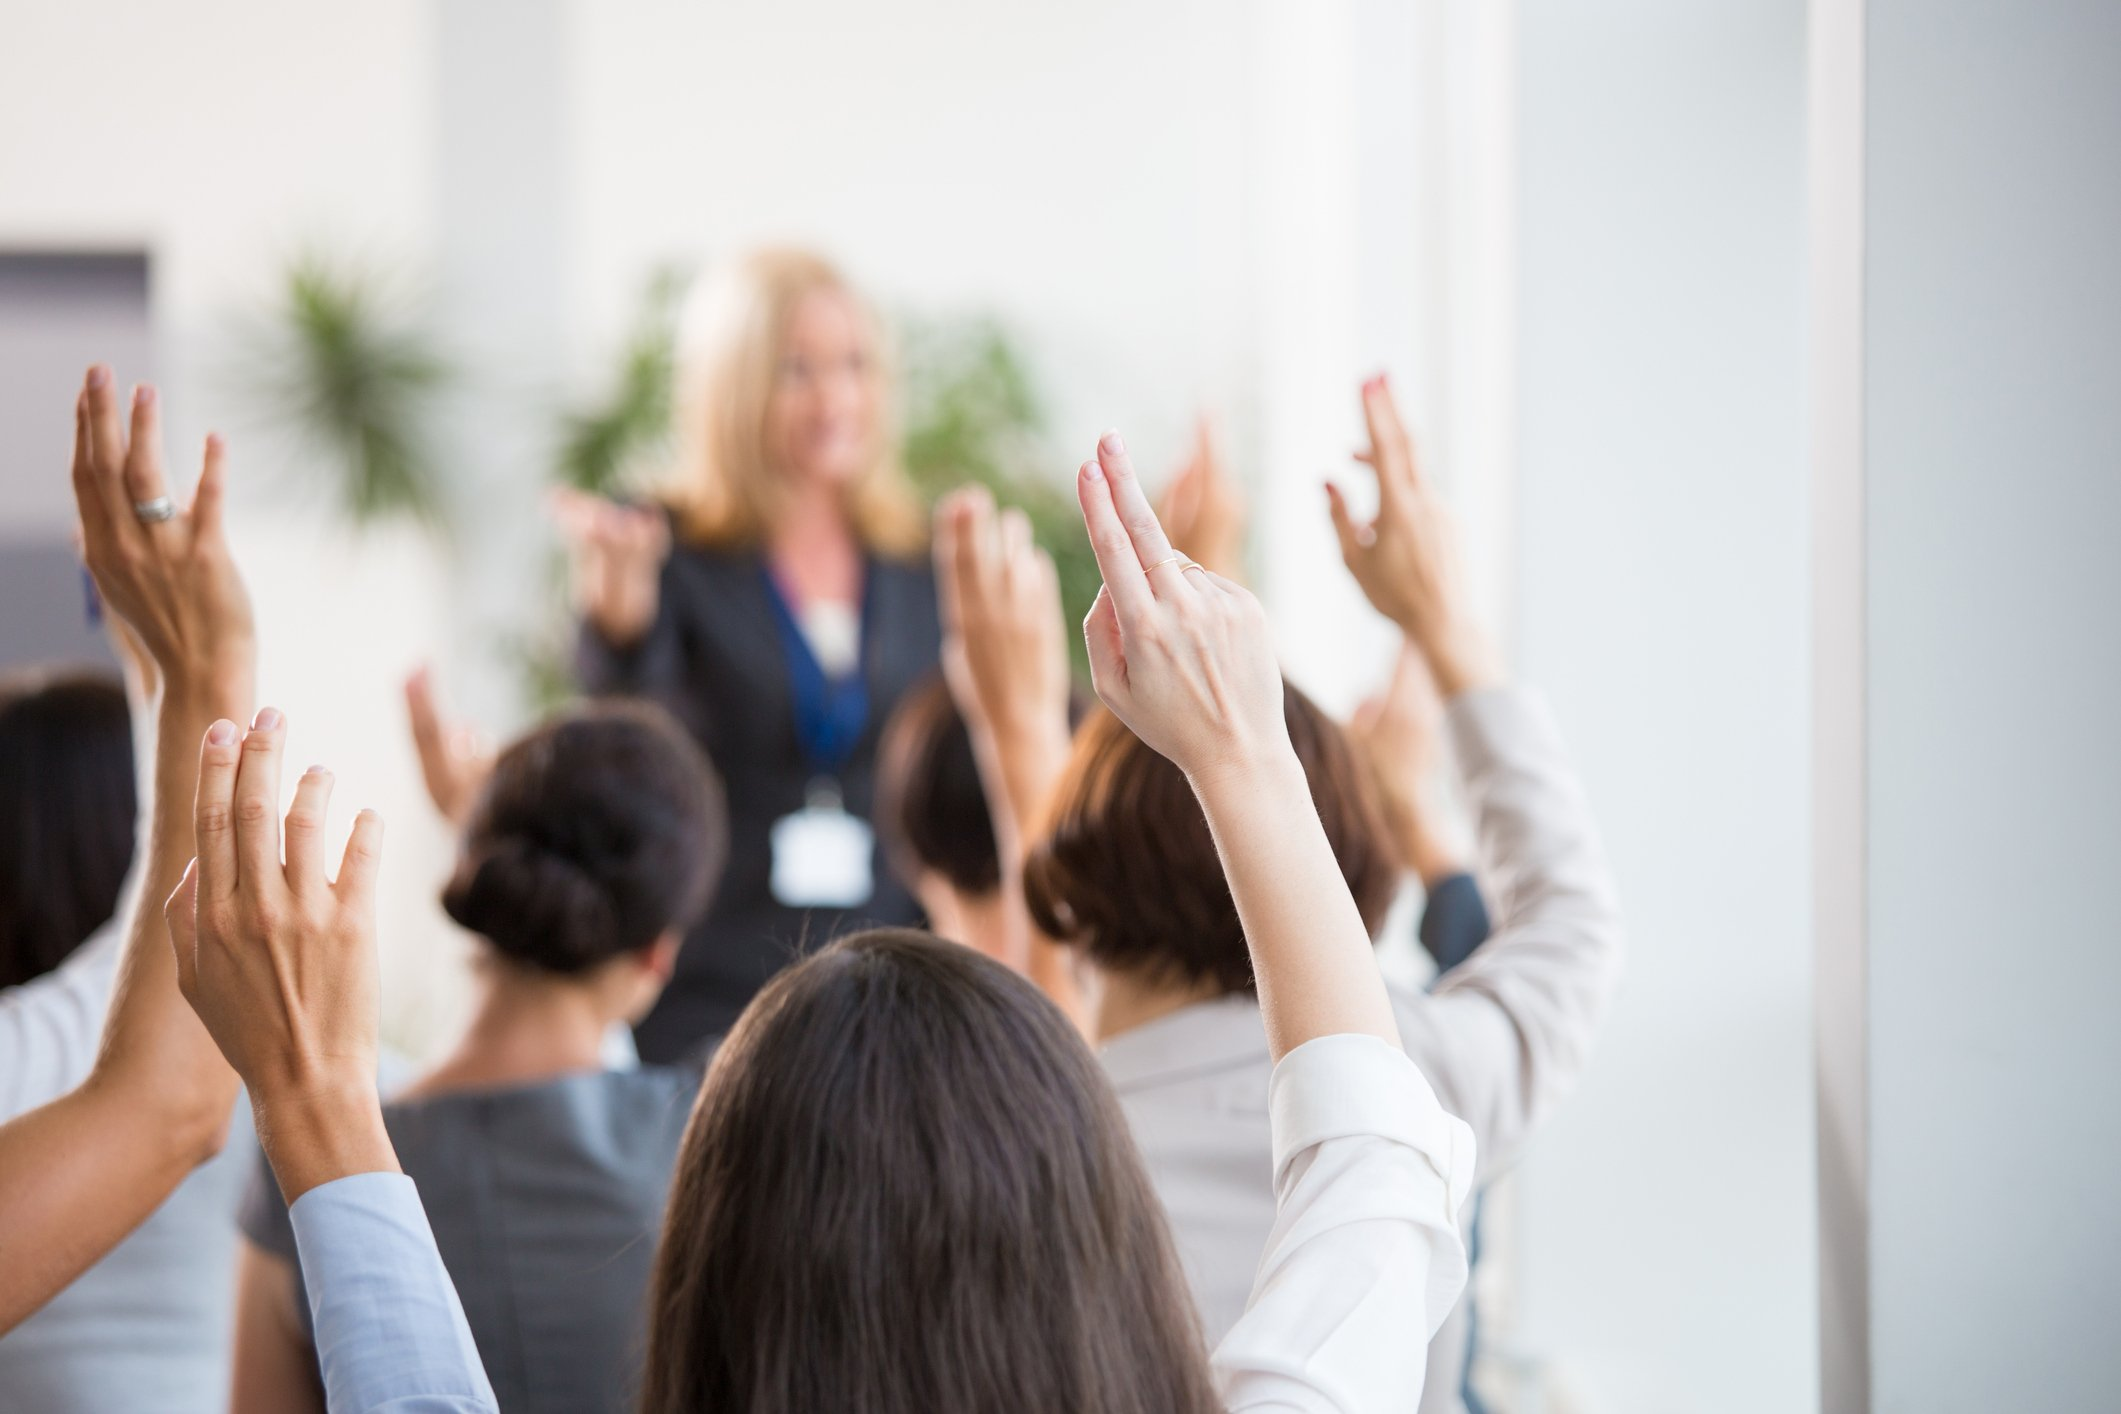 Group of people raising hands